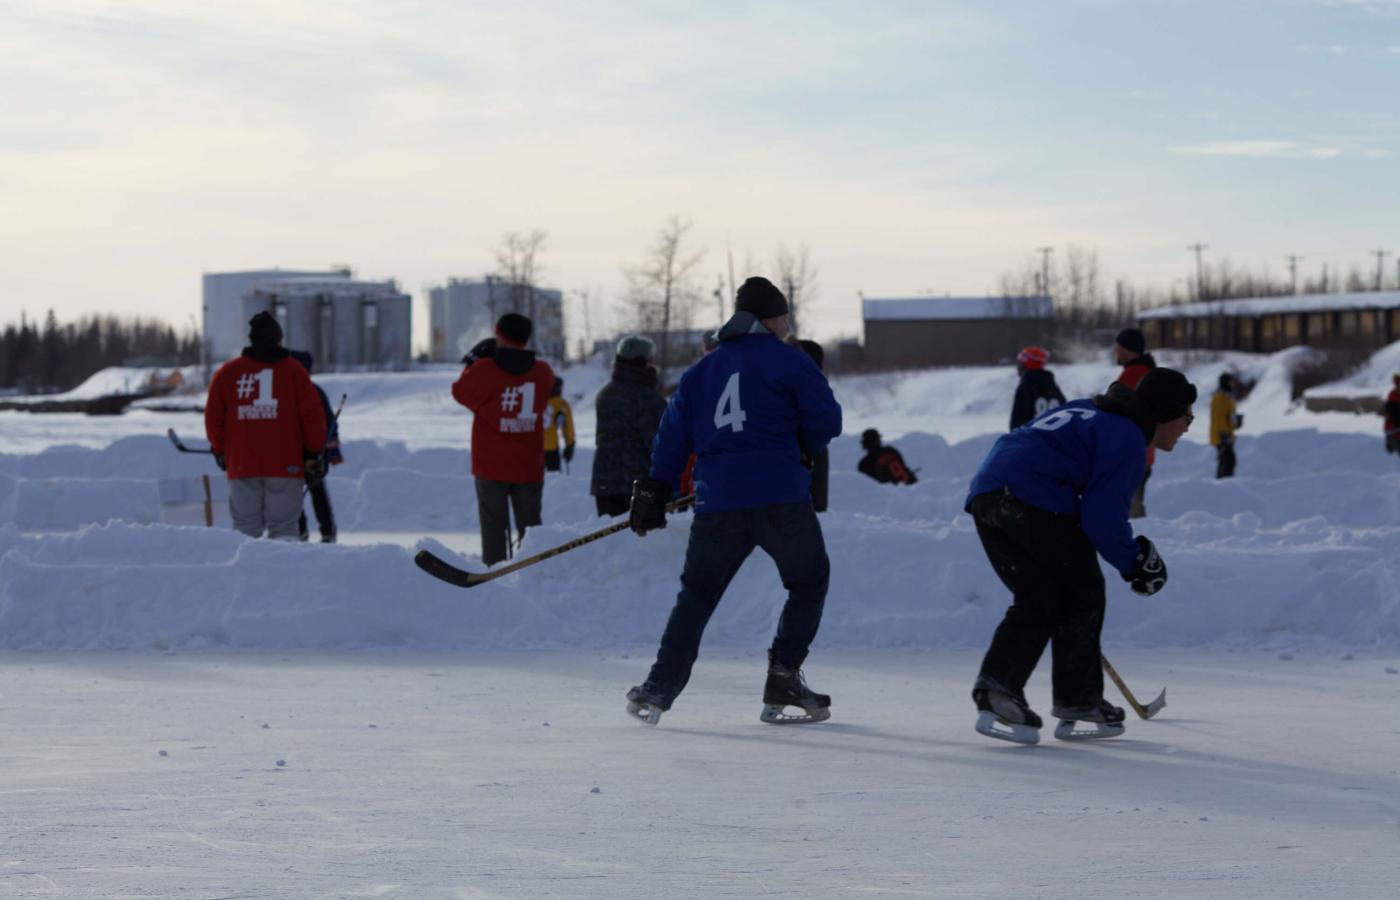 The Polar Pond Hockey Tournament in Hay River, Northwest Territories